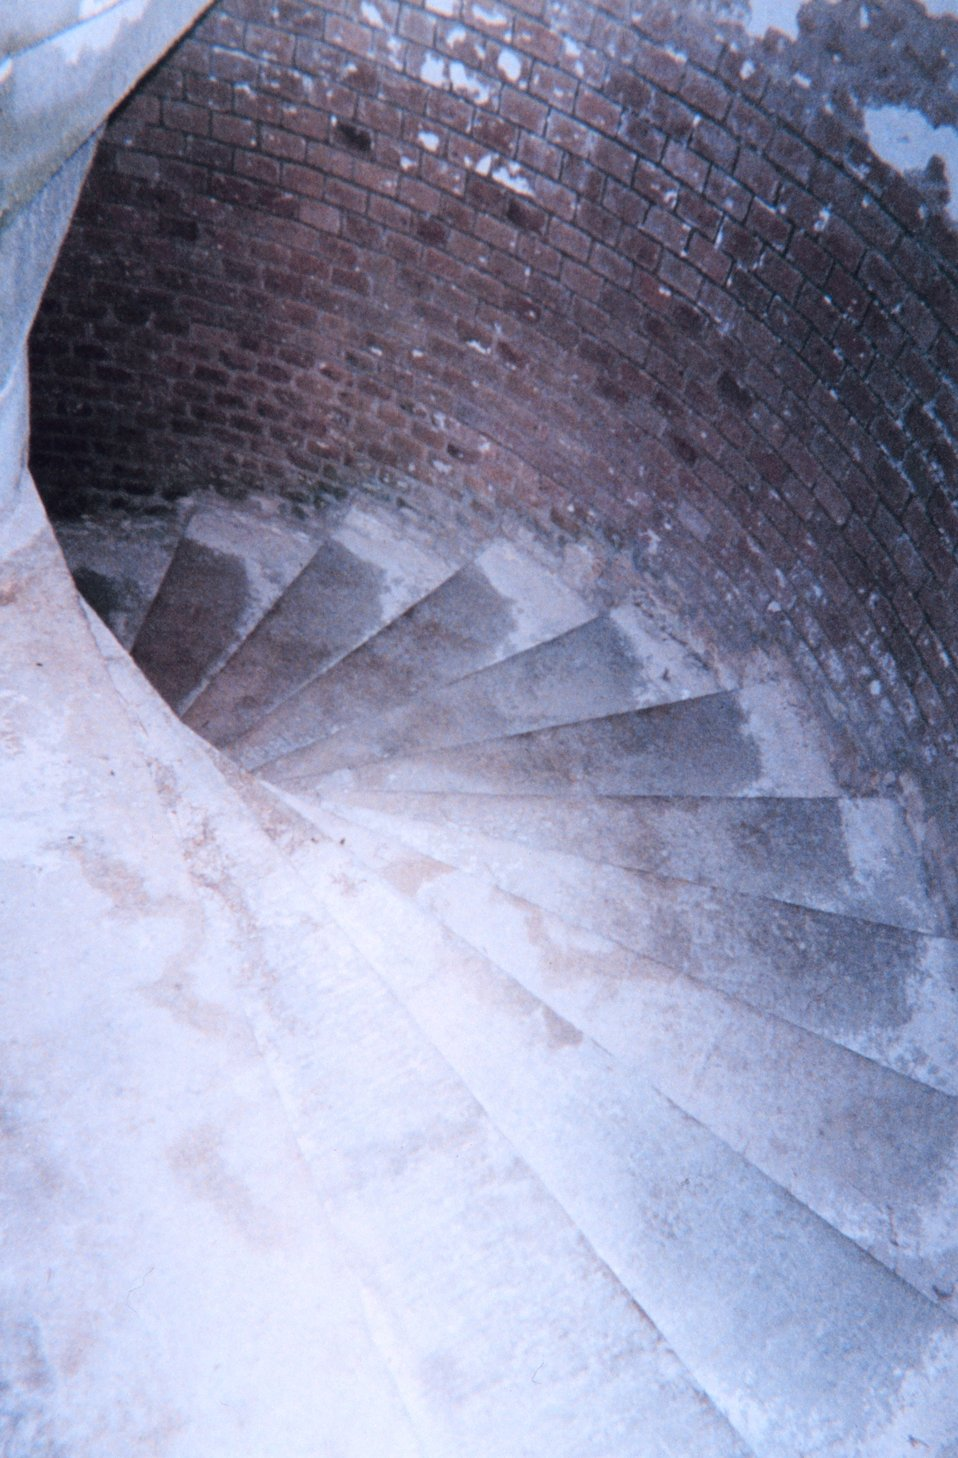 A spiral staircase leading down from the top of Fort Jefferson at Dry Tortugas National Park.